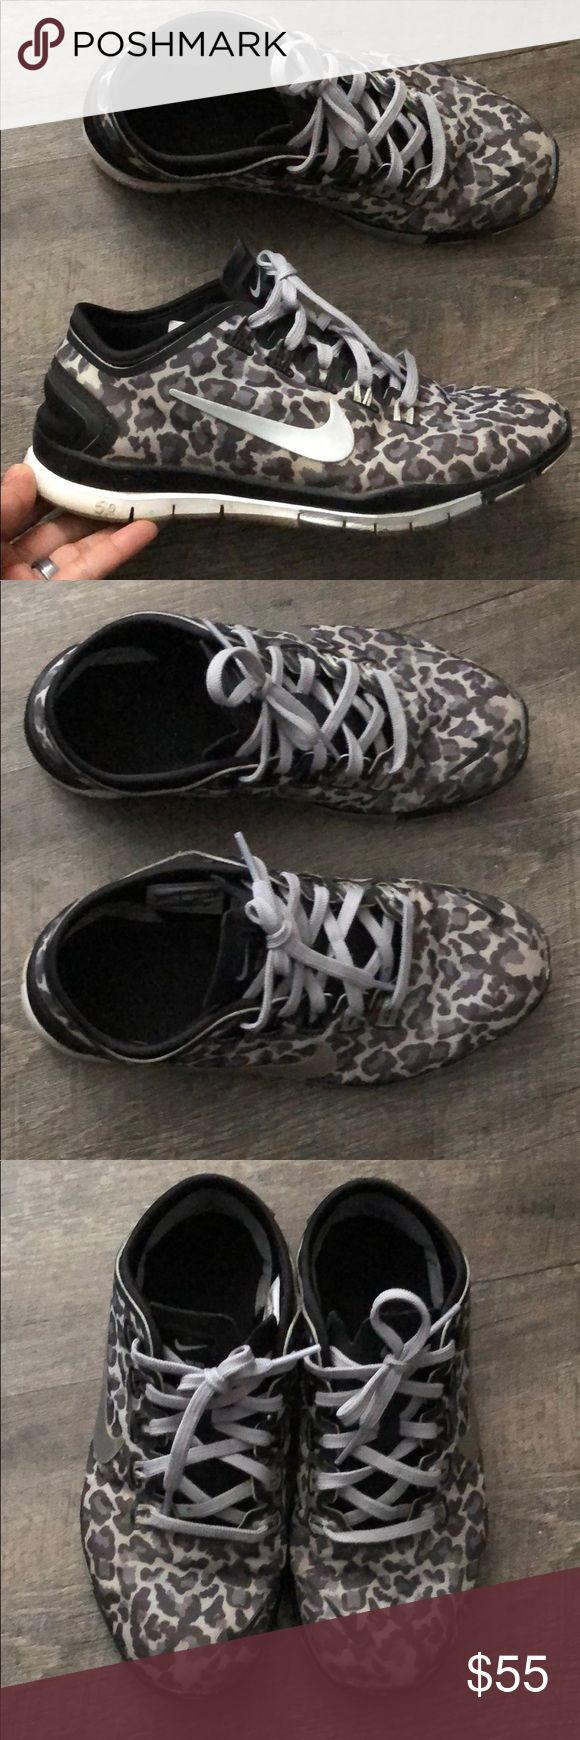 Nike leopard print shoes Preloved but still has a lot of life left Nike Shoes Athletic Shoes